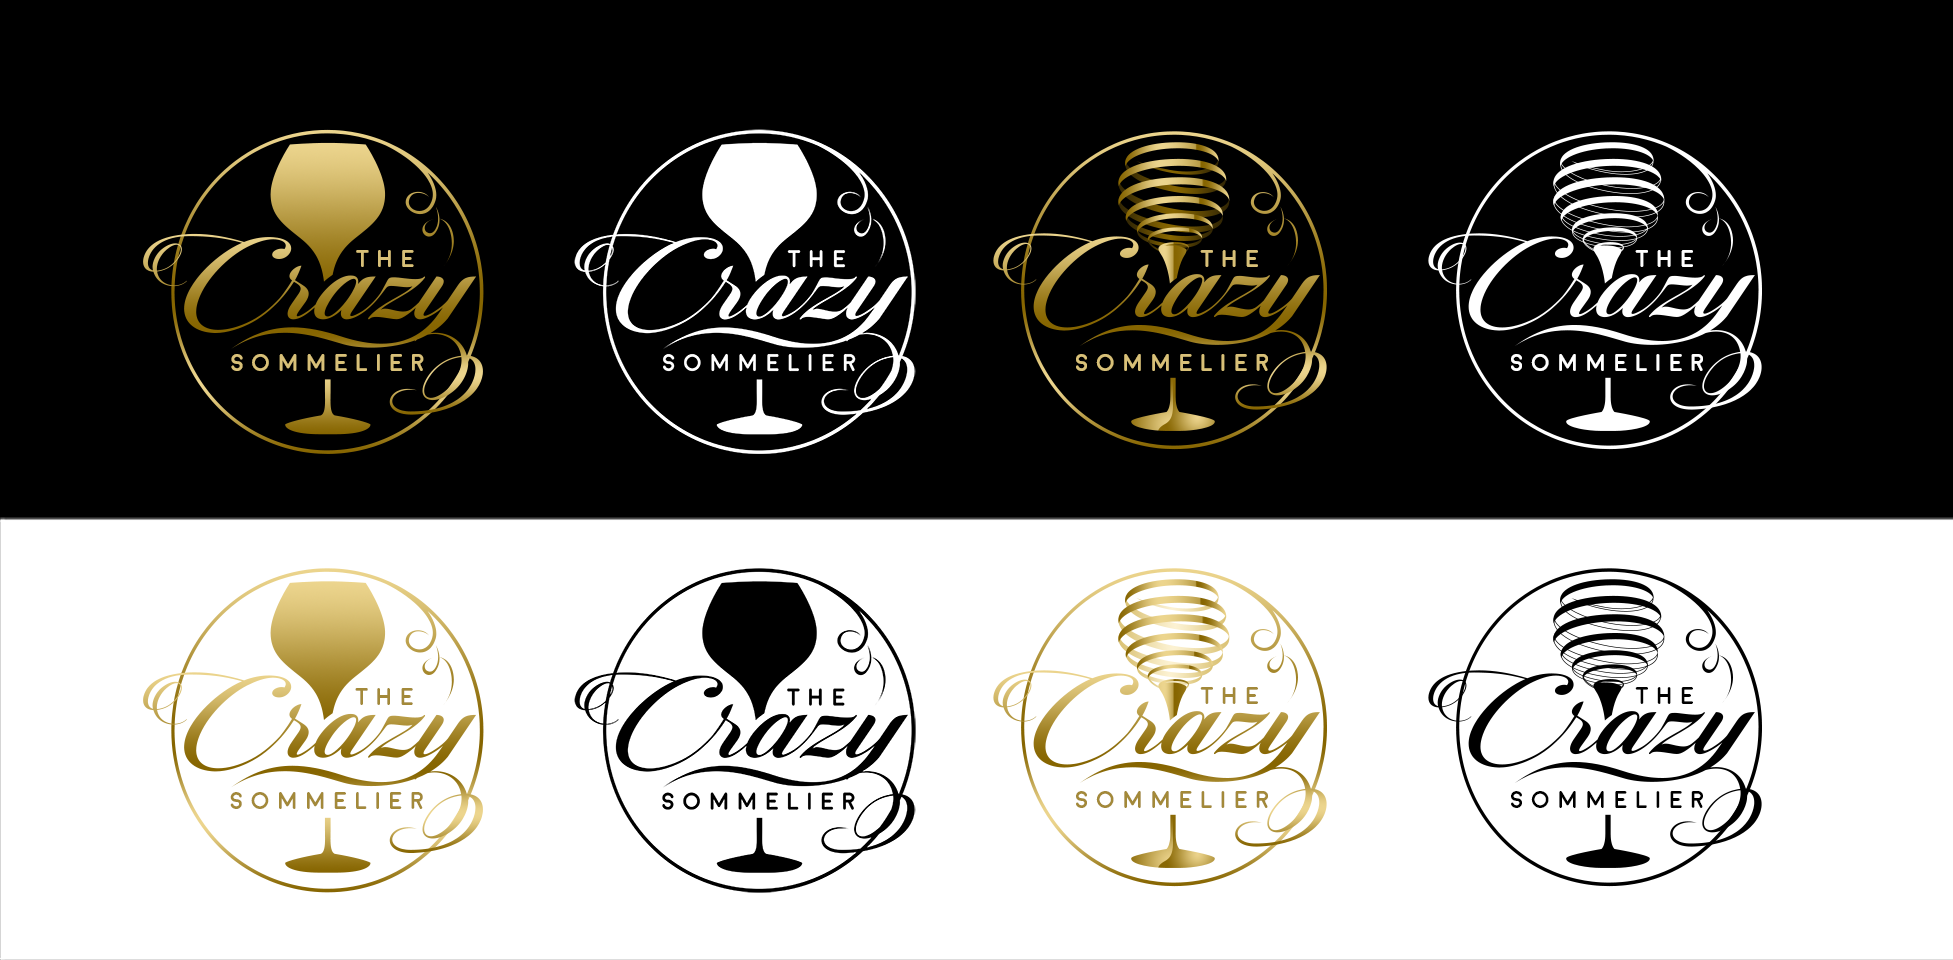 The Crazy Sommelier needs your logo